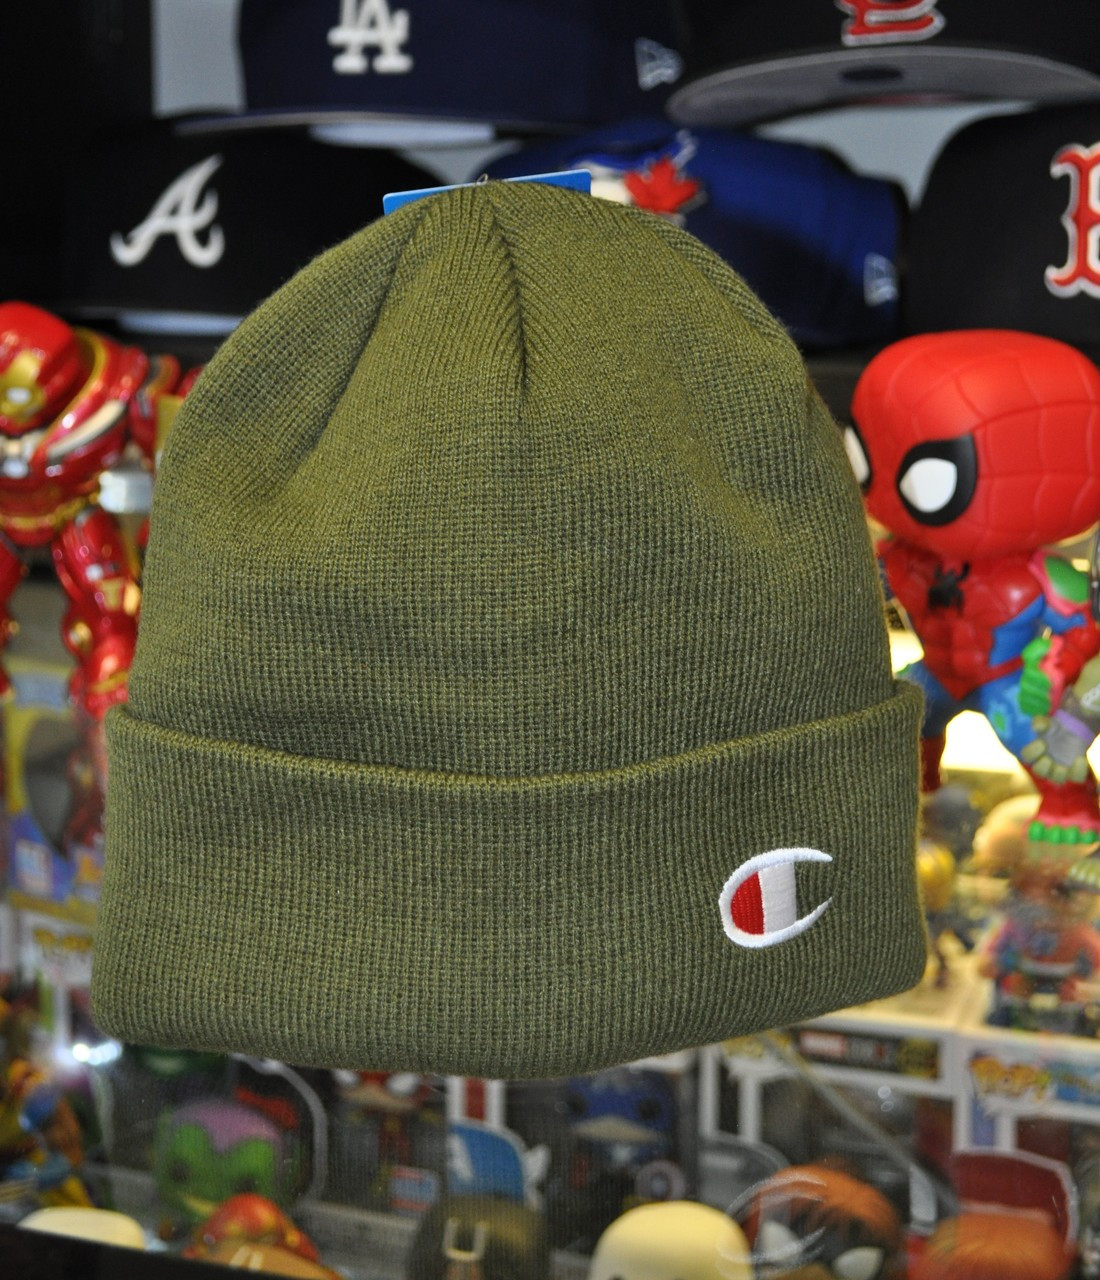 da7db2d6af172 Champion Beanie Green - Authentic Champion Clothing now at KCT ...